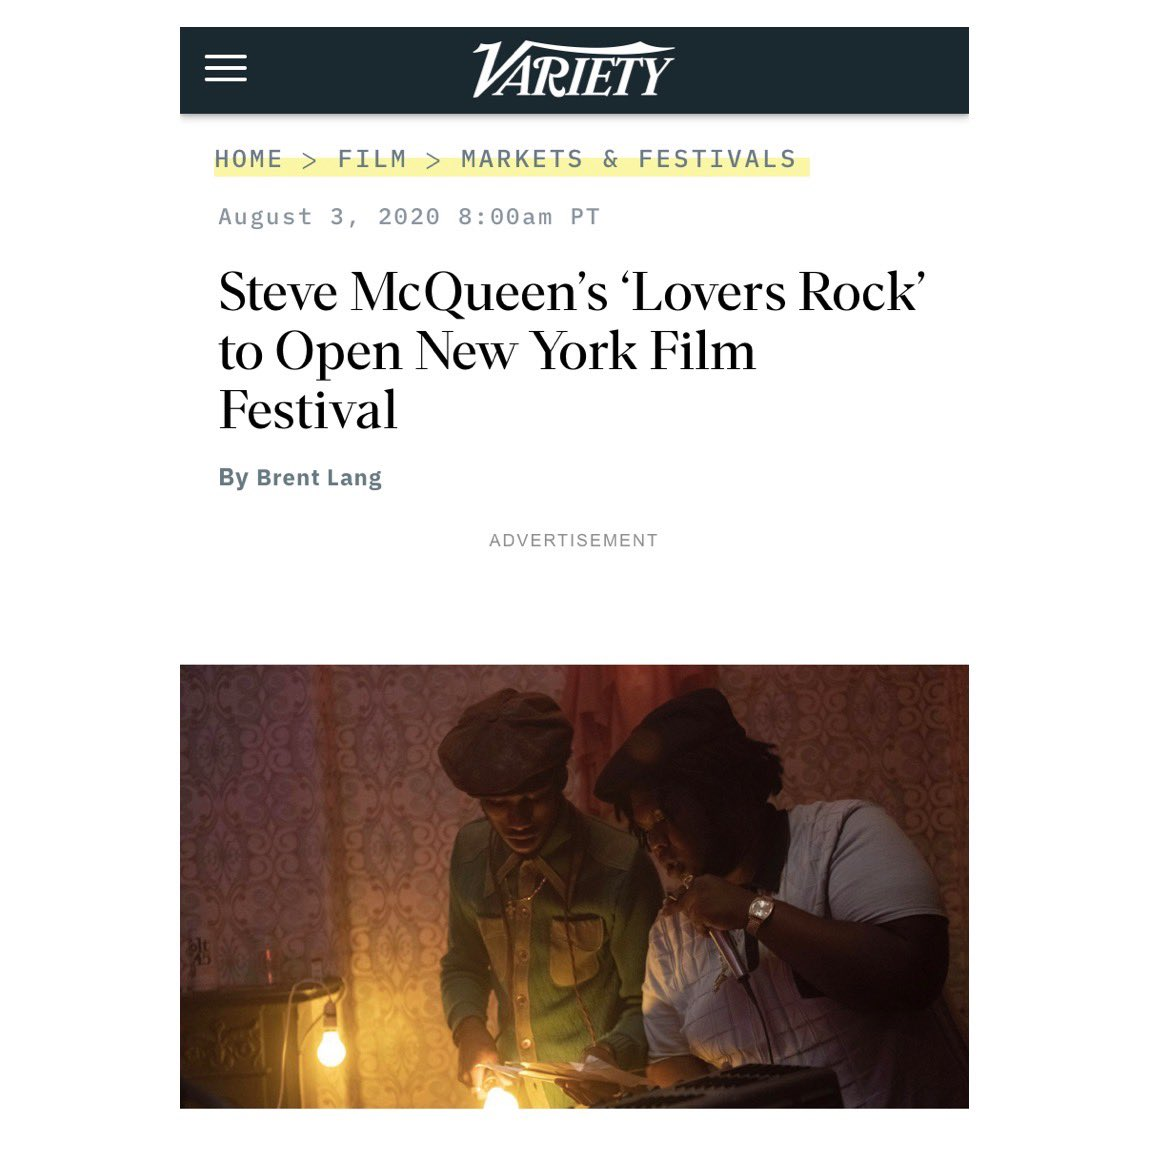 Thrilled to announce that Steve McQueen's 'Lovers Rock' starring @onlymikes_ is opening New York Film Festival this year ahead of its premiere on @bbc and @amazonprimevideo 🎥✨